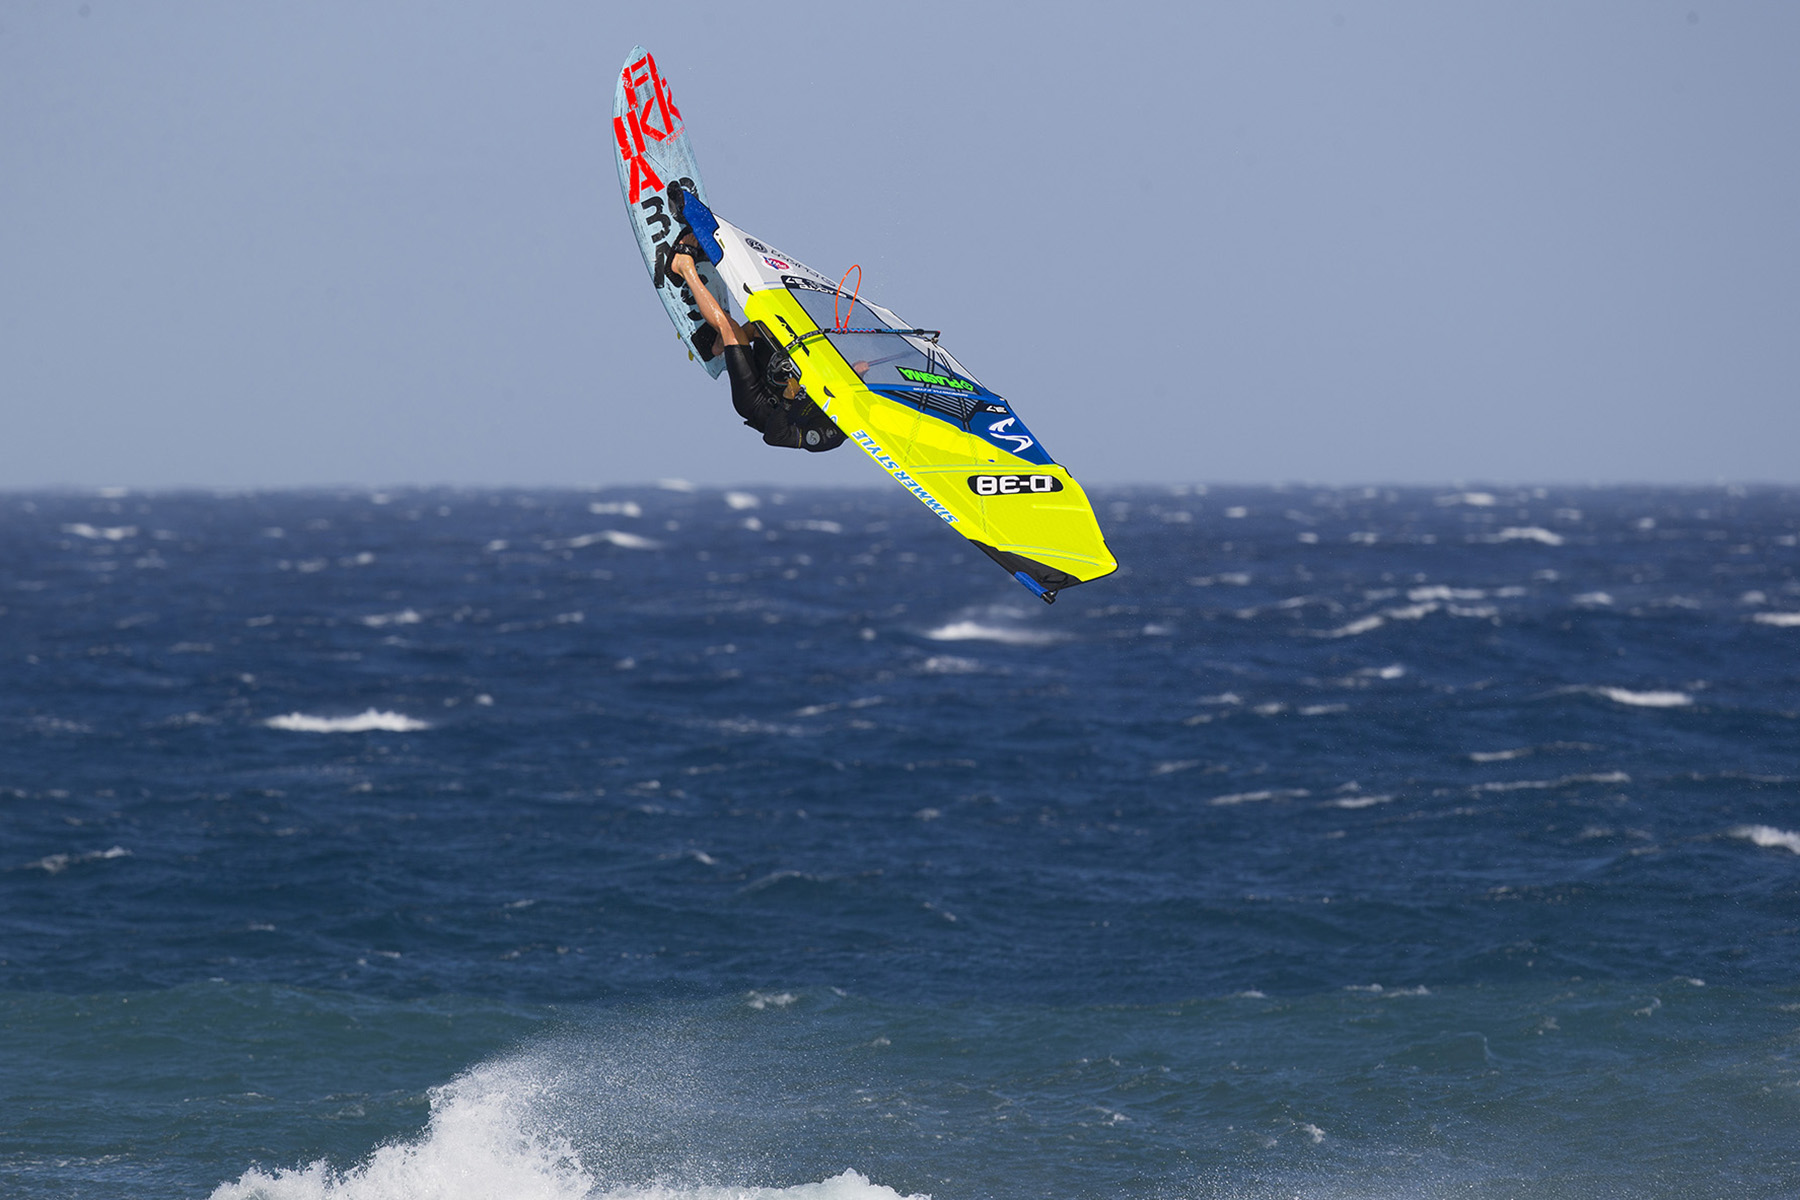 Kenneth-Danielsen-PWA-windsurf-Team-rider-Flikka-boards